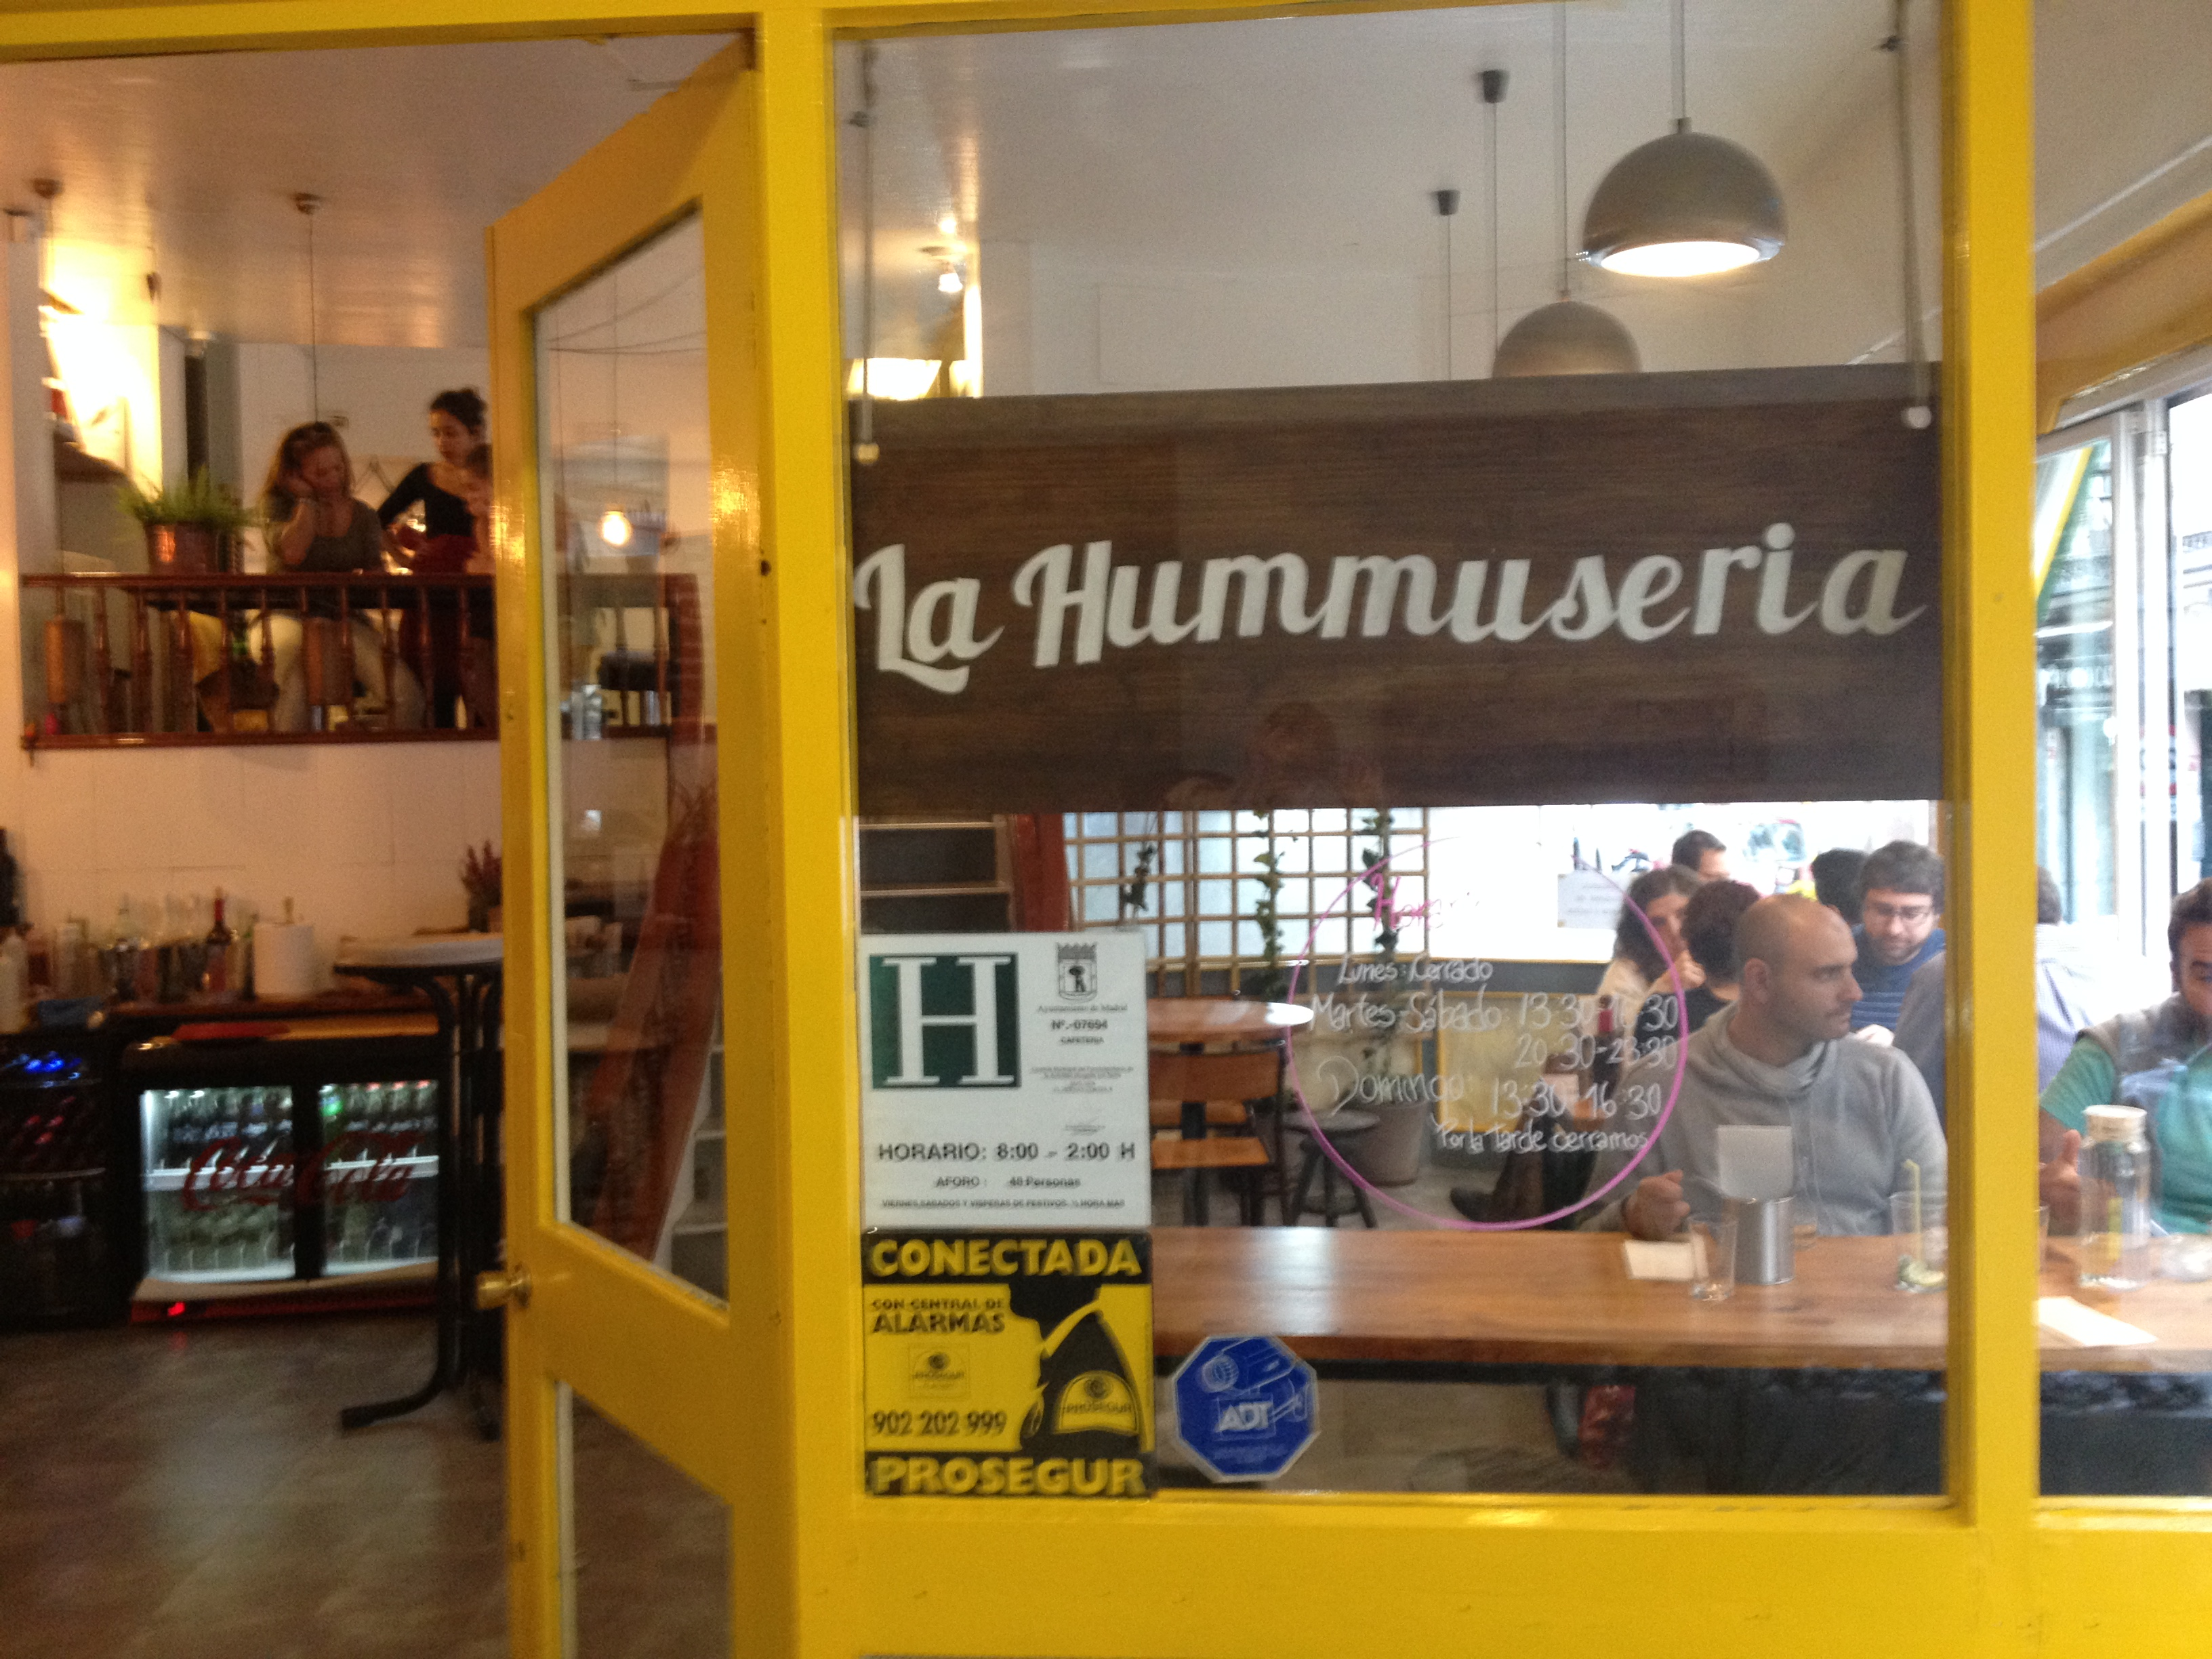 La Hummuseria by Naked Madrid